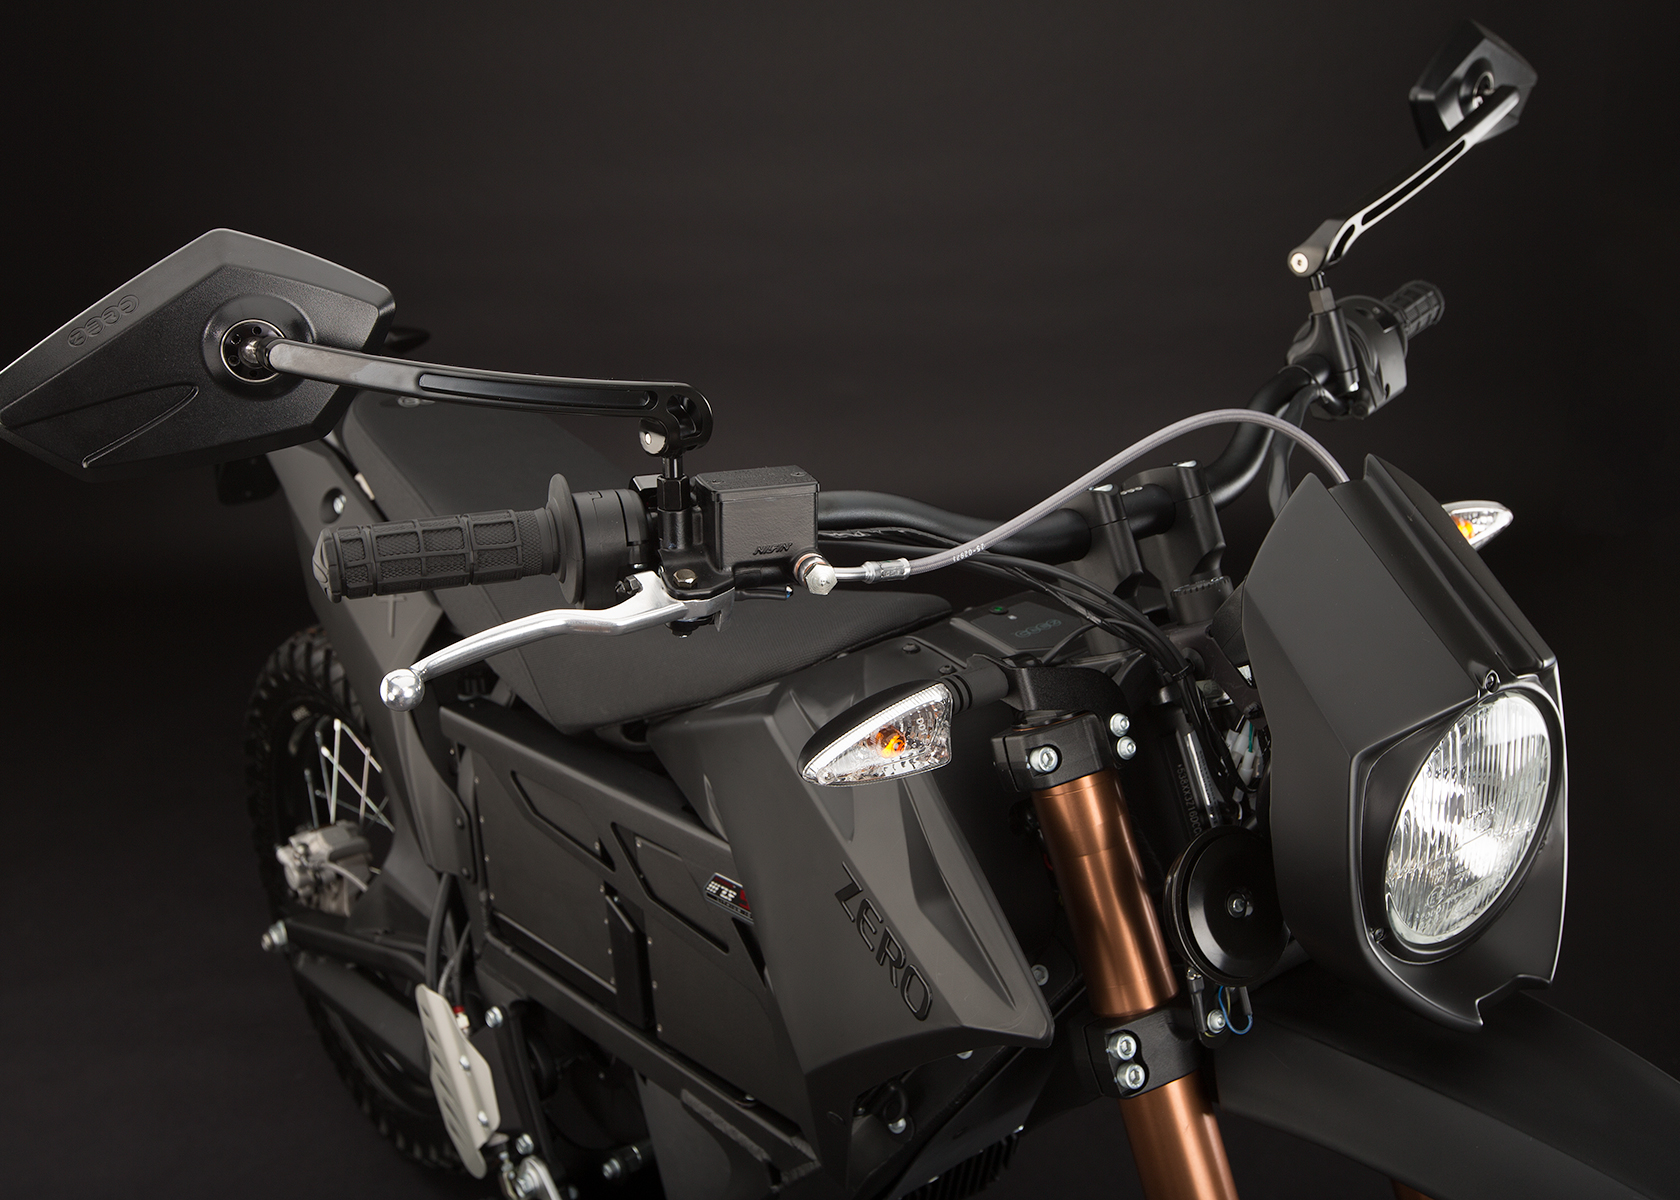 '.2013 Zero FX Electric Motorcycle: Street Legal.'